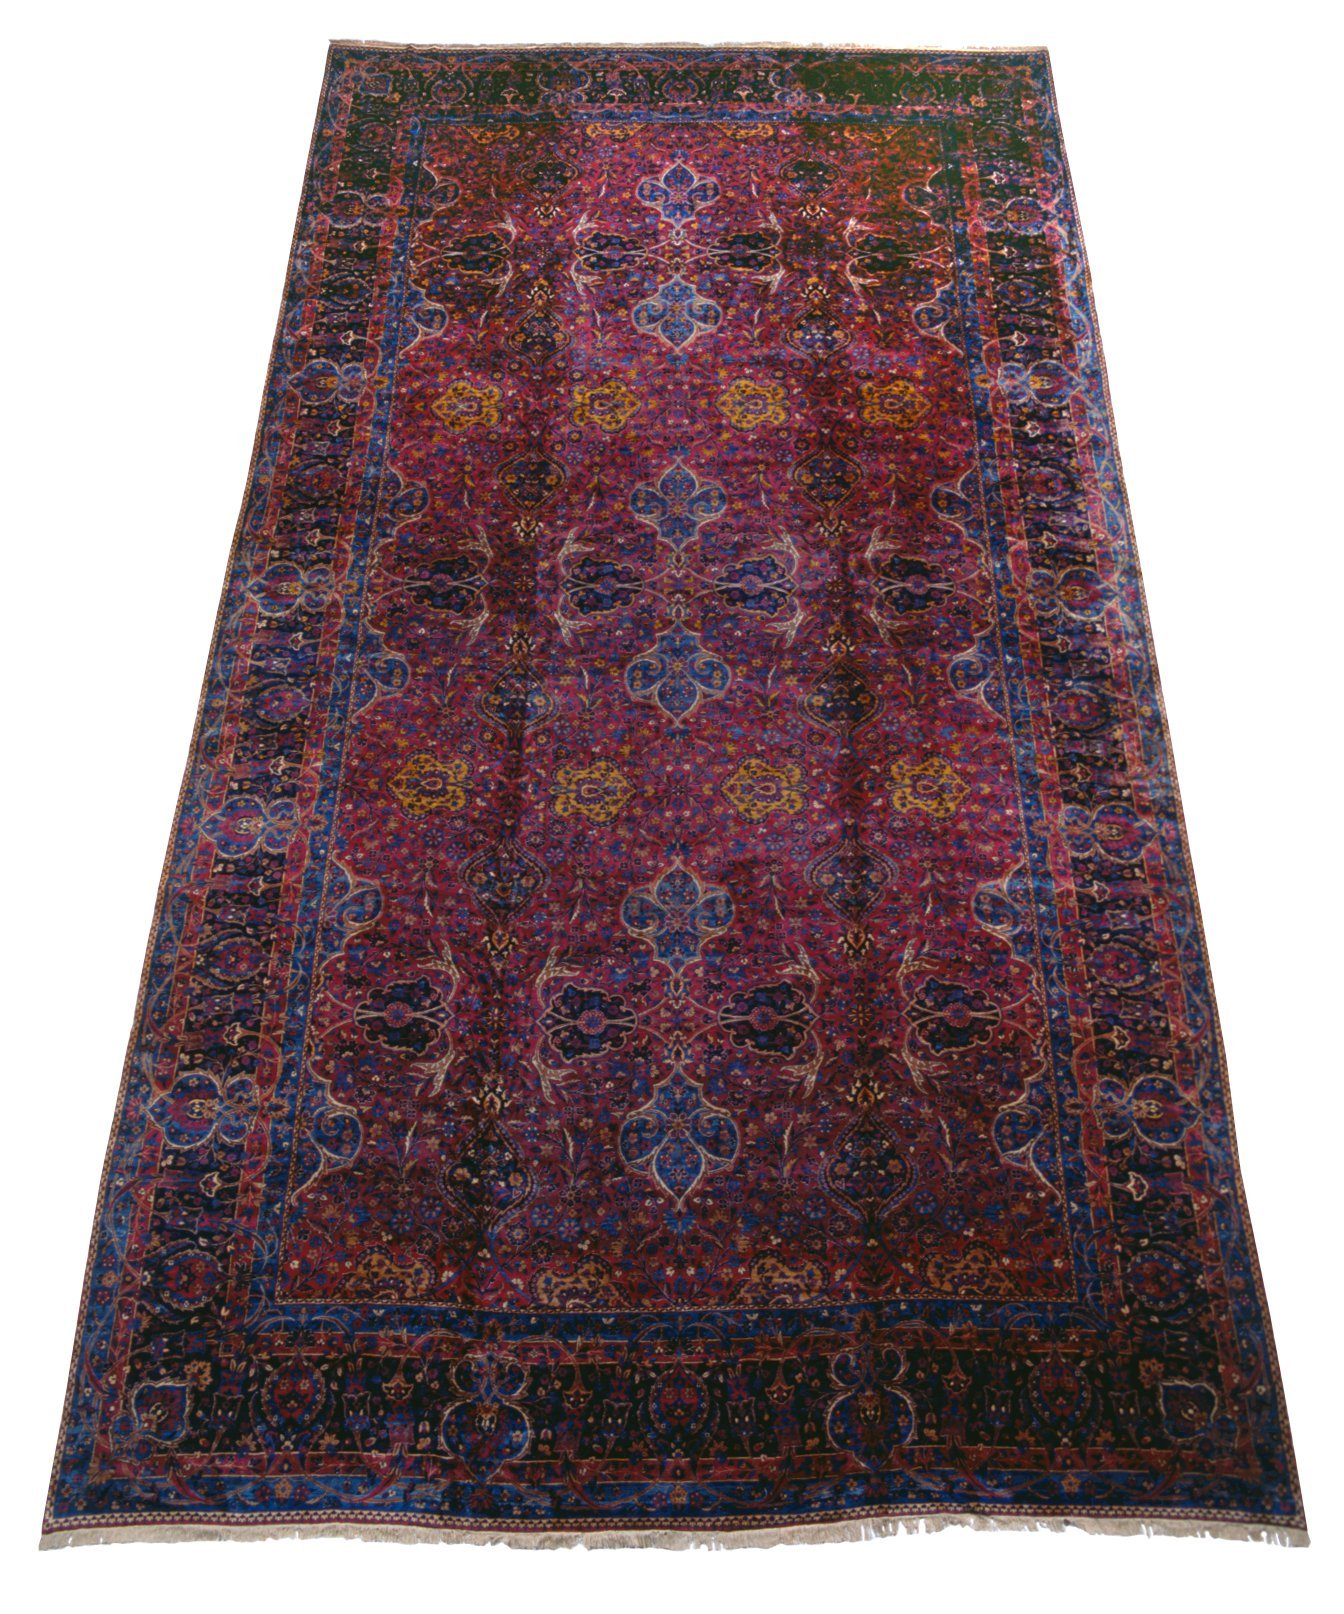 16' x 29' Large Oversized Persian Kerman